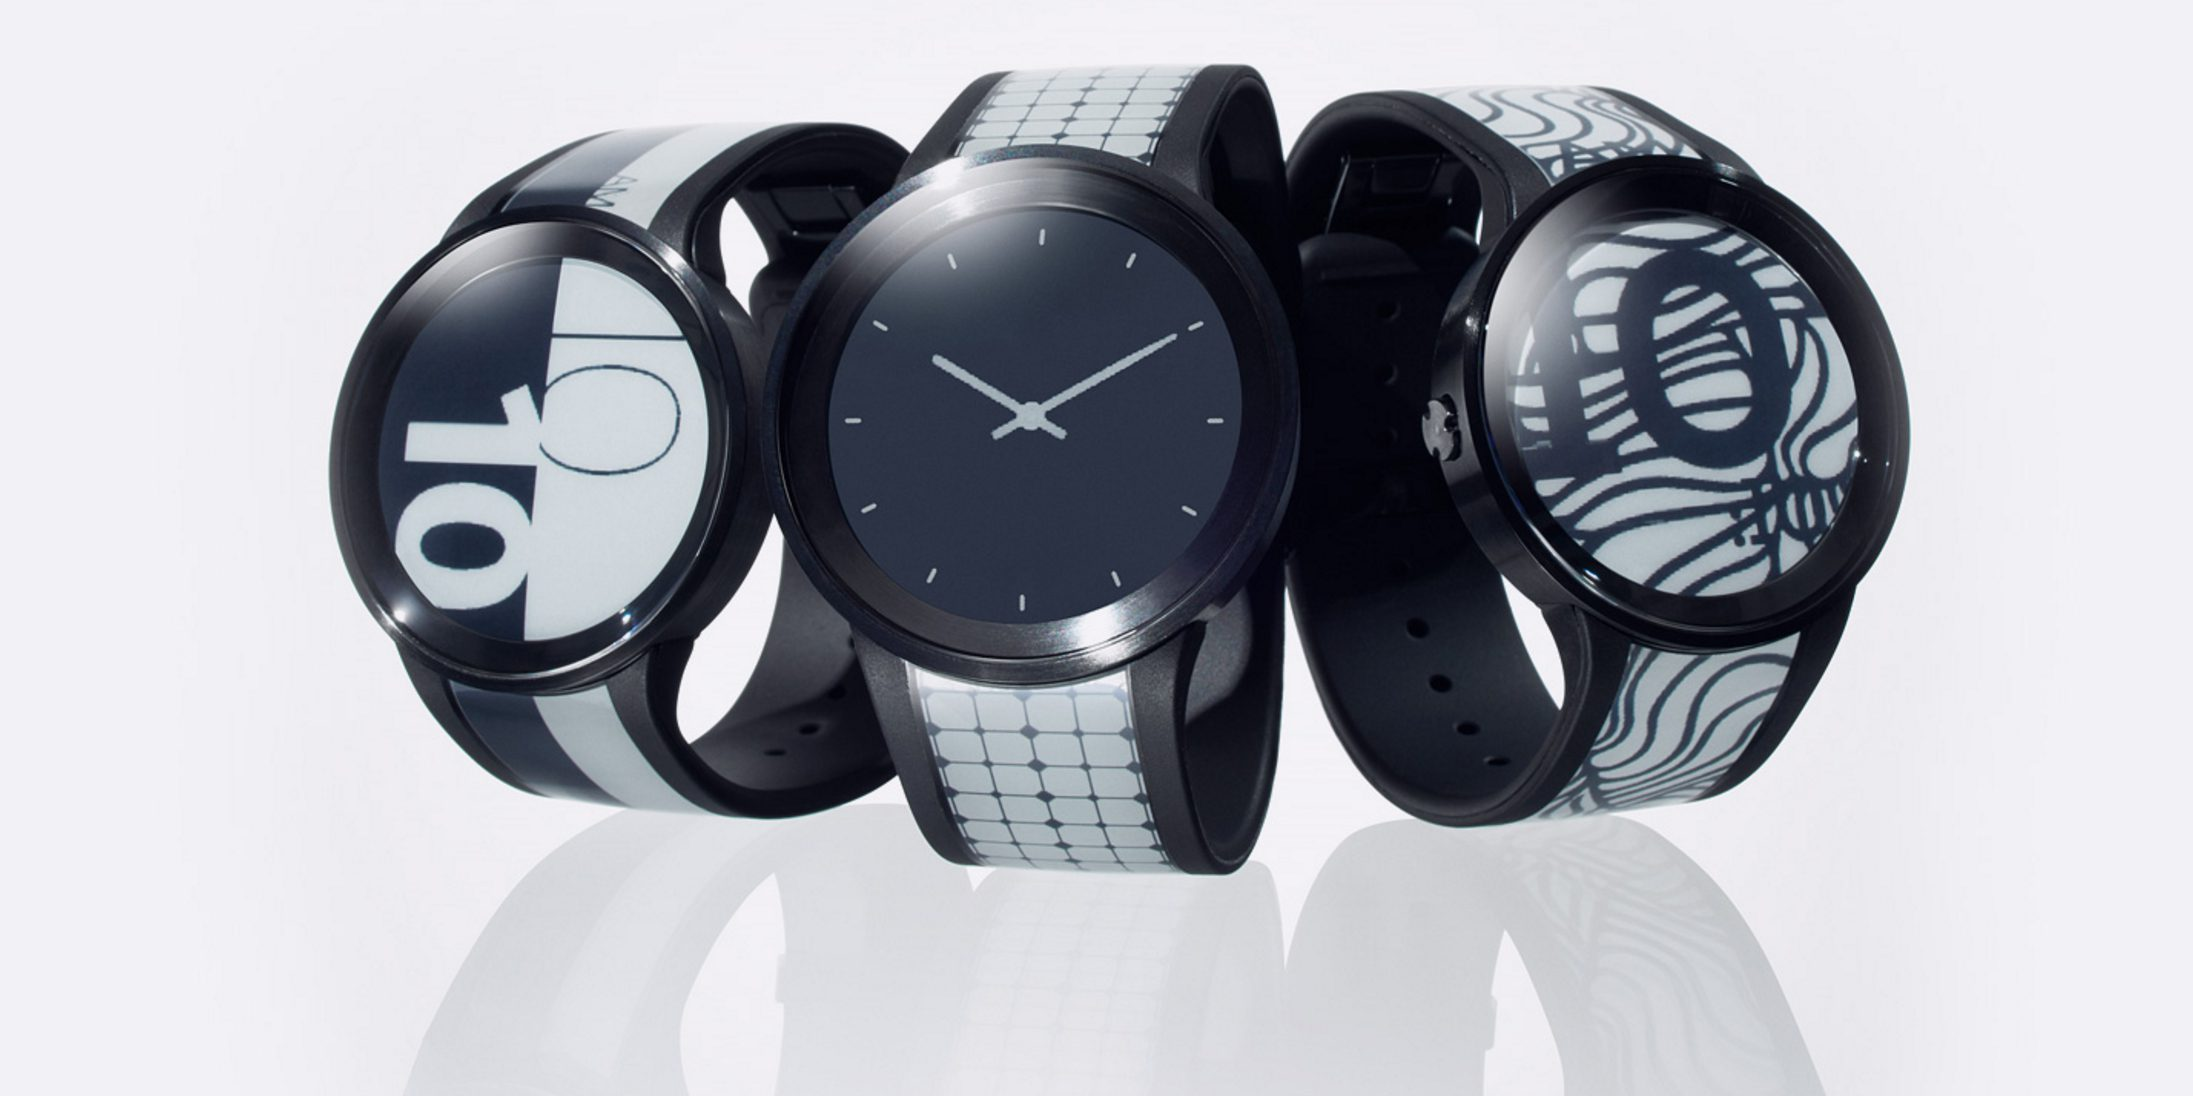 sony-fes-u-watch